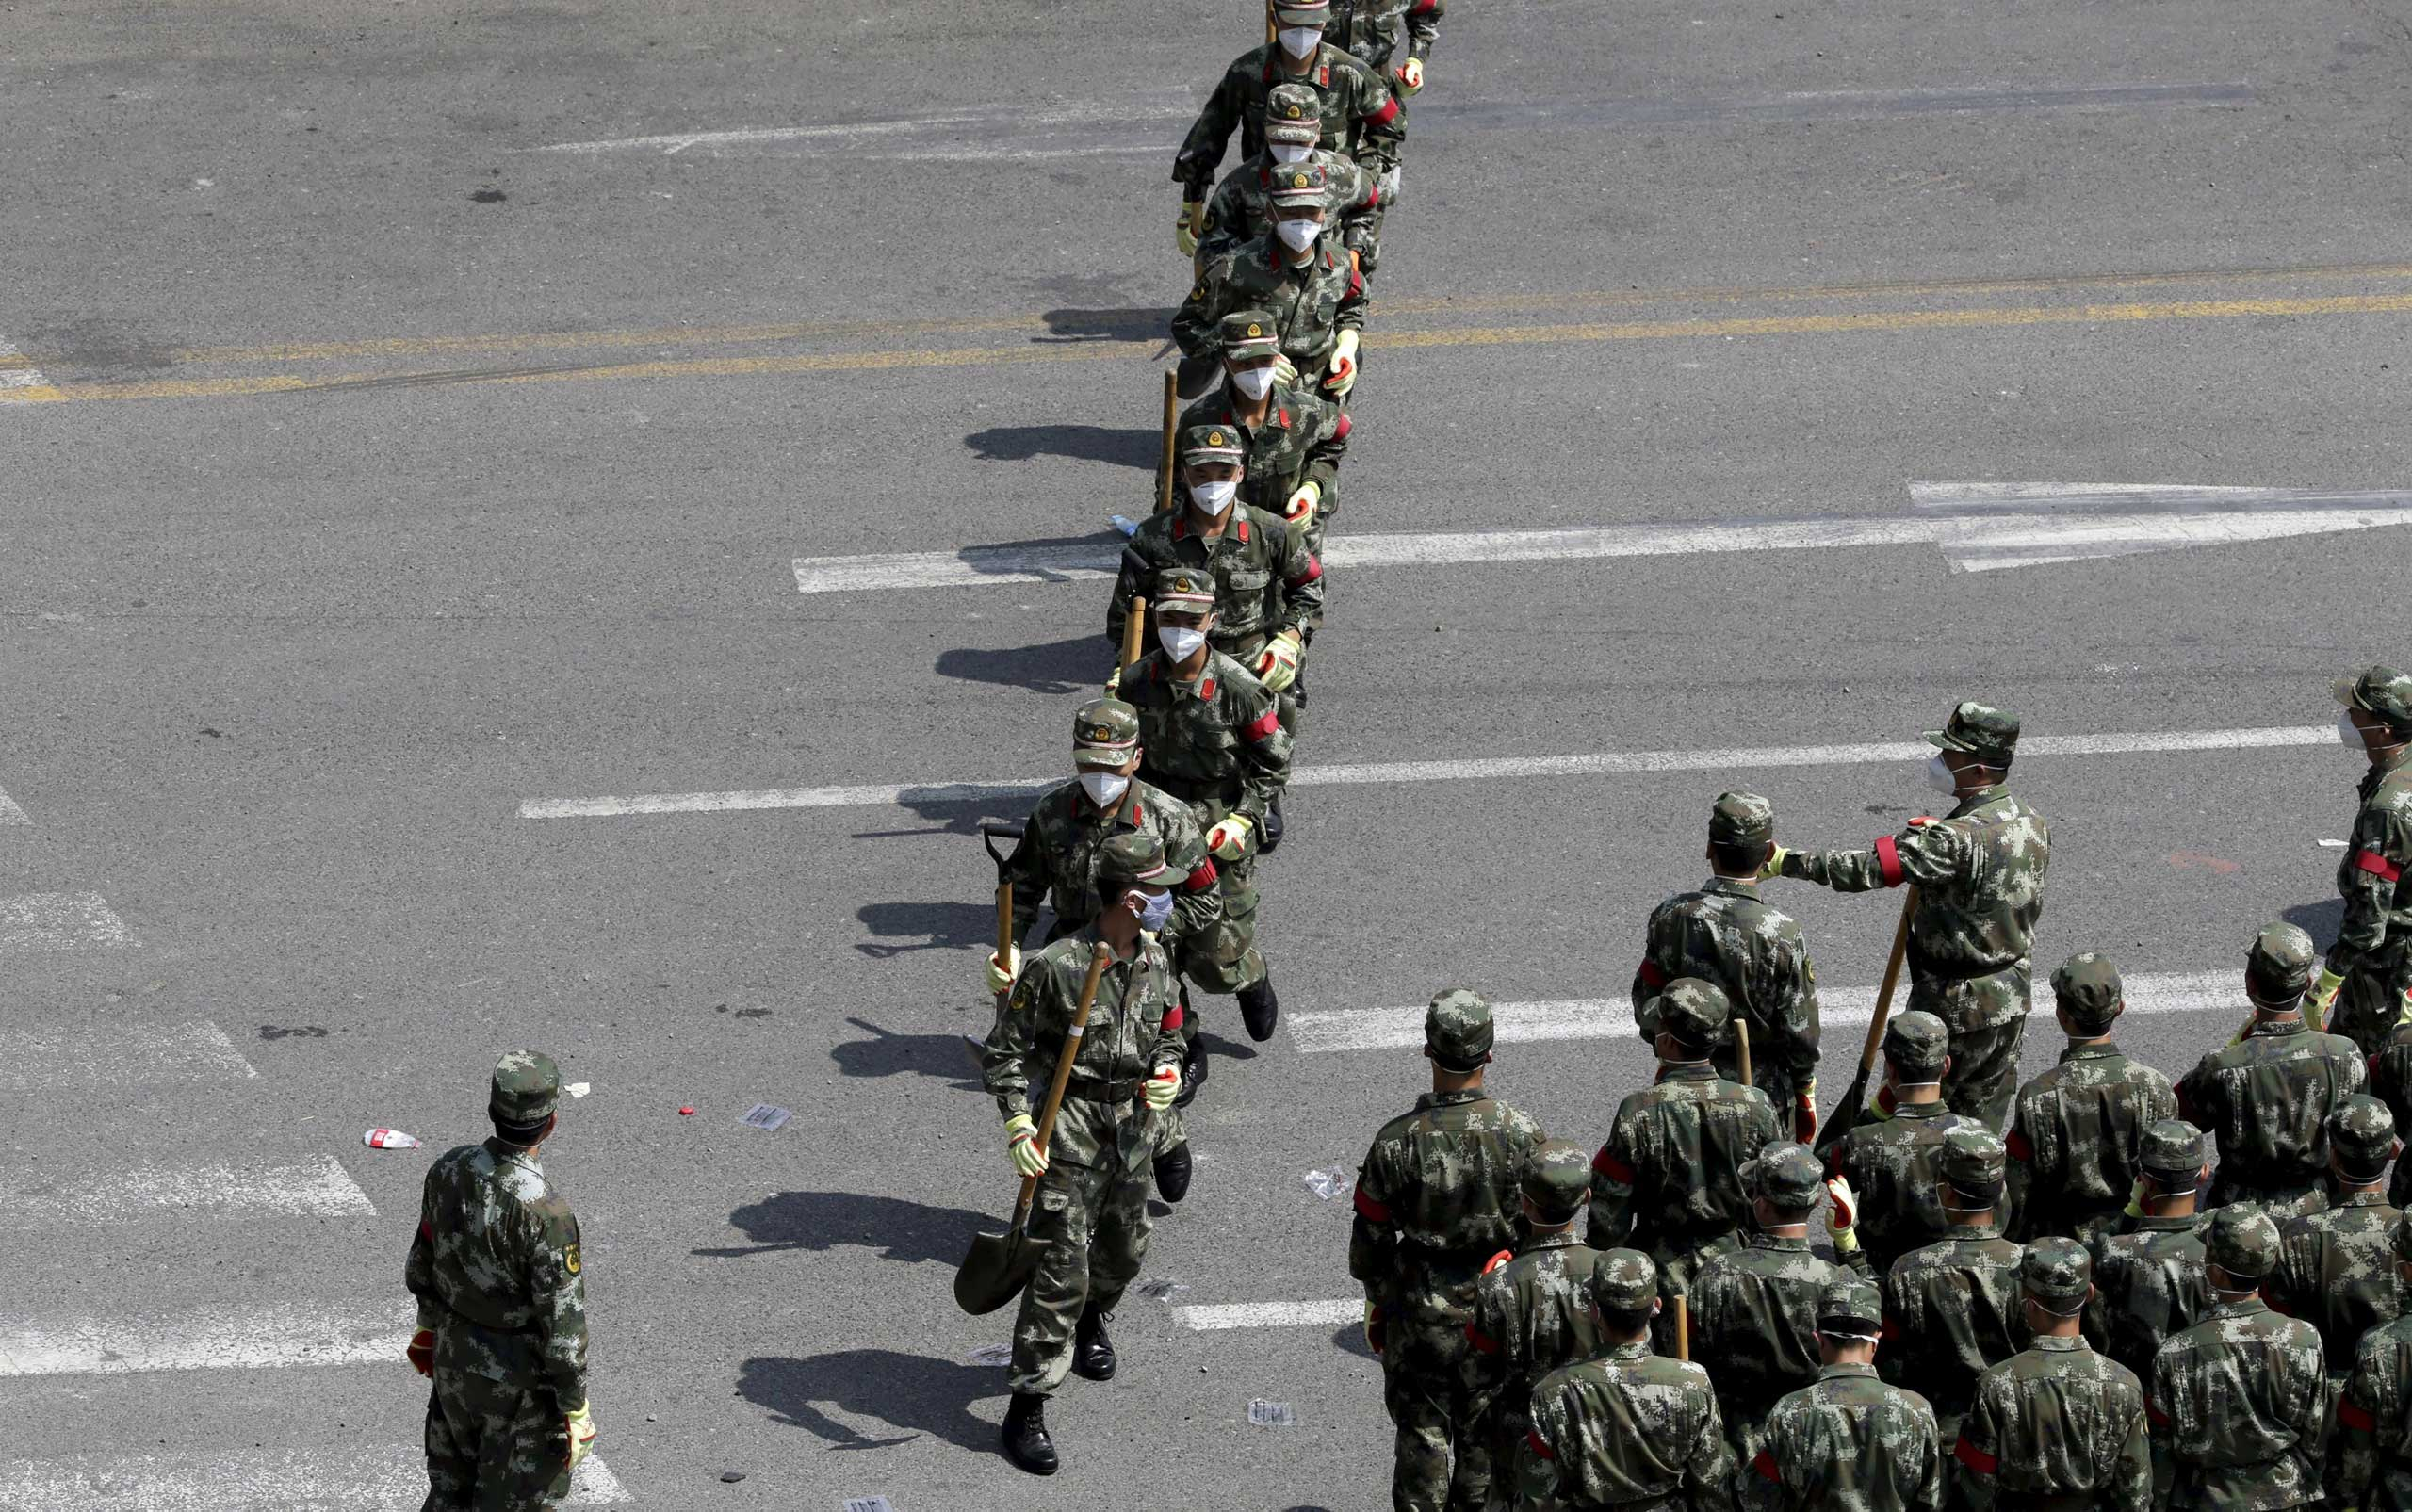 Paramilitary police prepare to enter the site of the explosions at the Binhai new district, Tianjin, on Aug. 13, 2015.